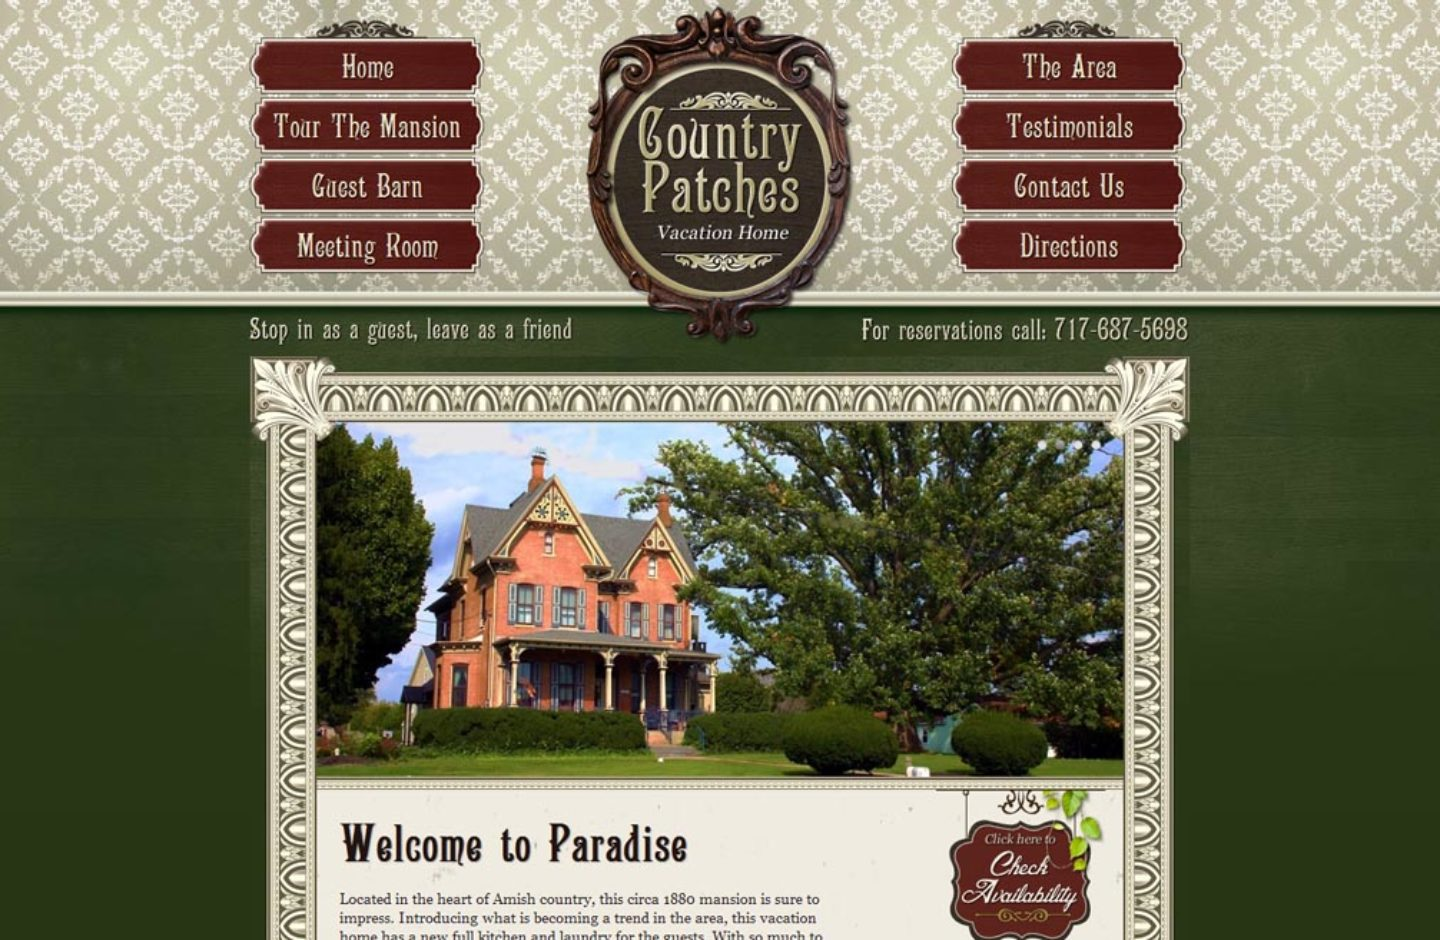 Country Patches Bed Breakfast